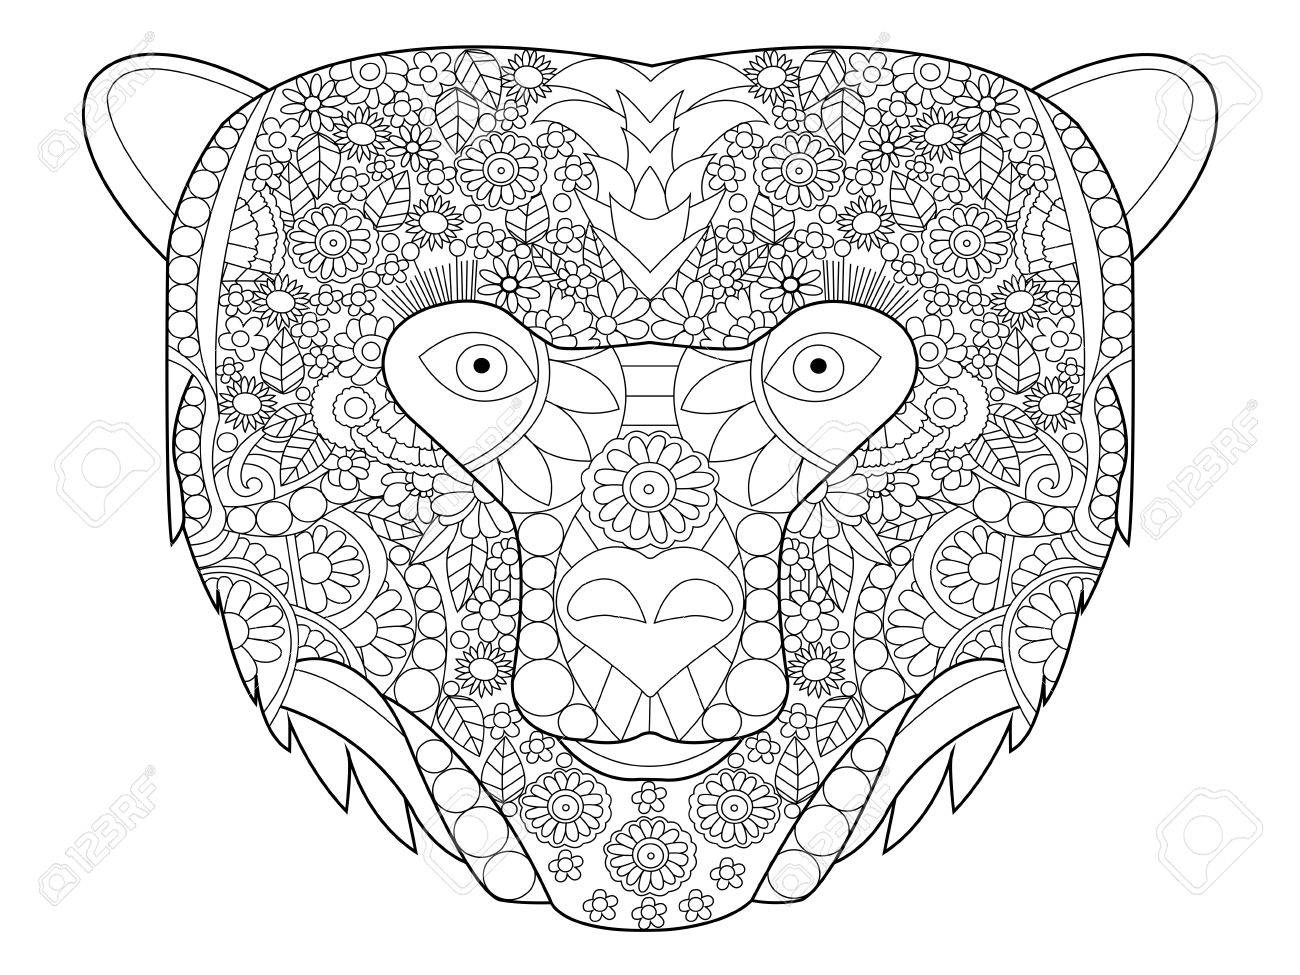 Coloring adults stress - Bear Head Coloring Book For Adults Vector Illustration Anti Stress Coloring For Adult